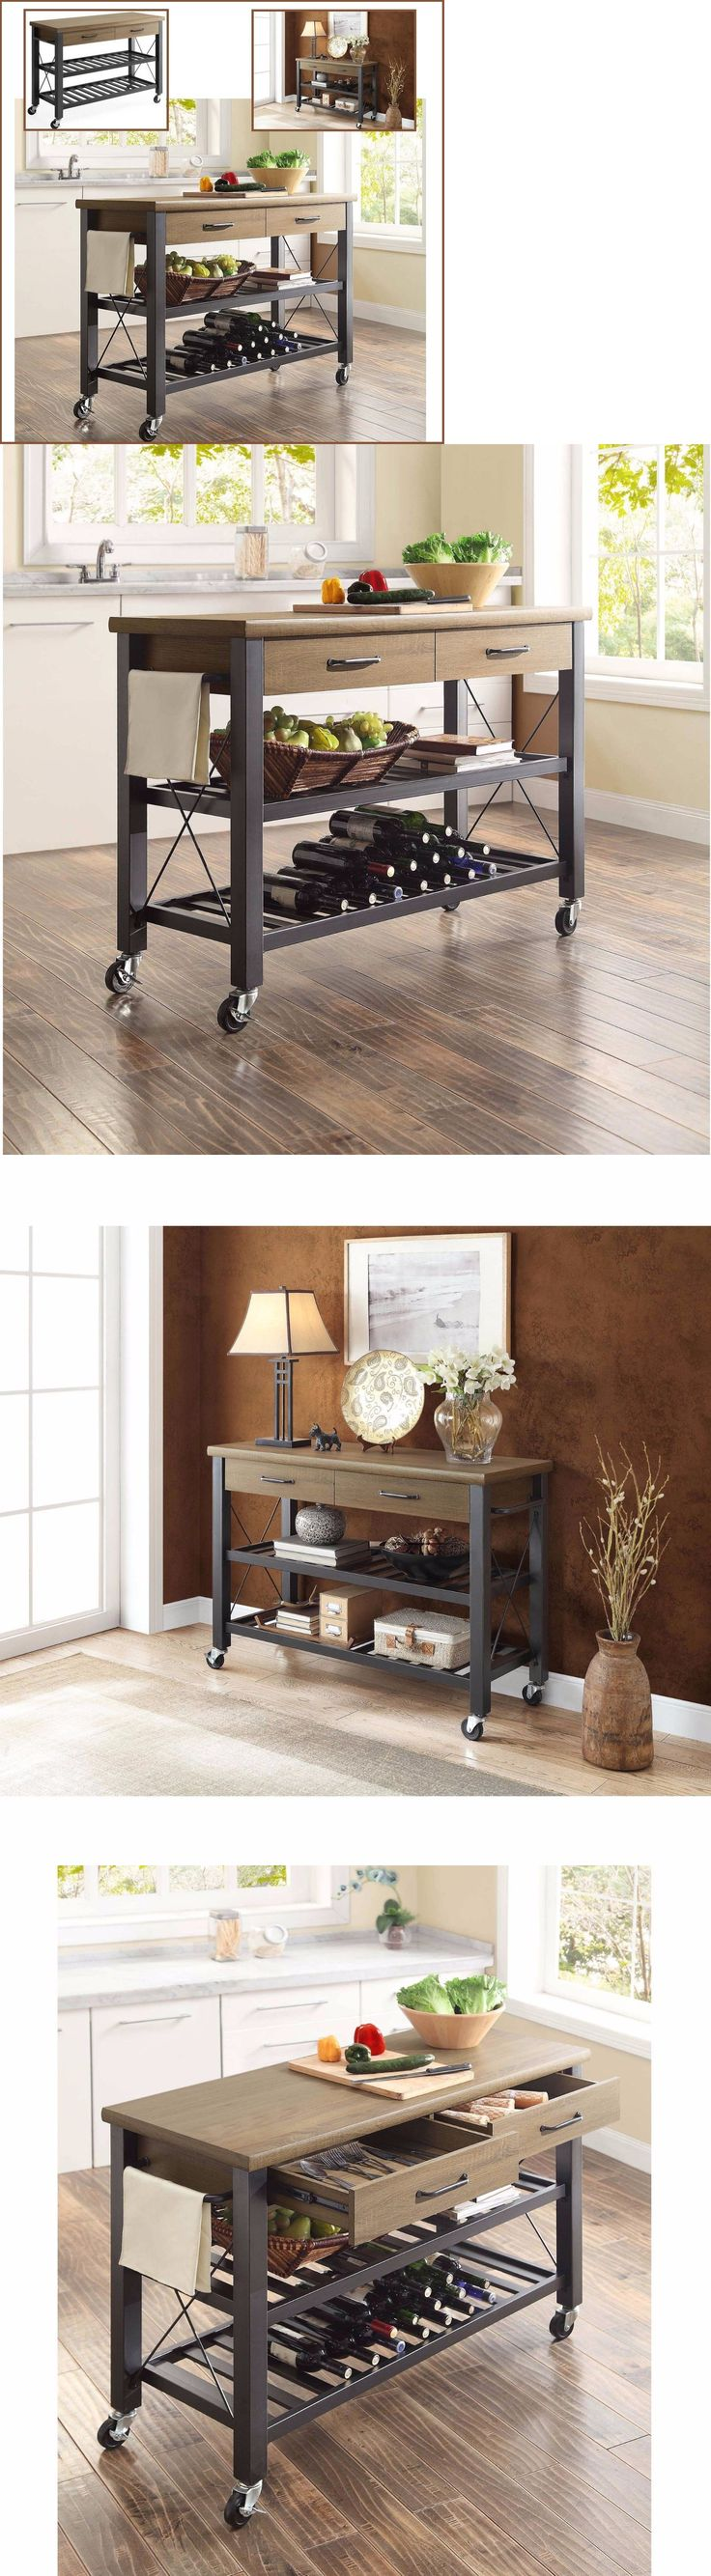 Wood swivel desk chair laquered finish warms amp padded seat ebay - Kitchen Islands Kitchen Carts 115753 Industrial Kitchen Cart Island Bar Sofa Table Drawers Shelf Rustic